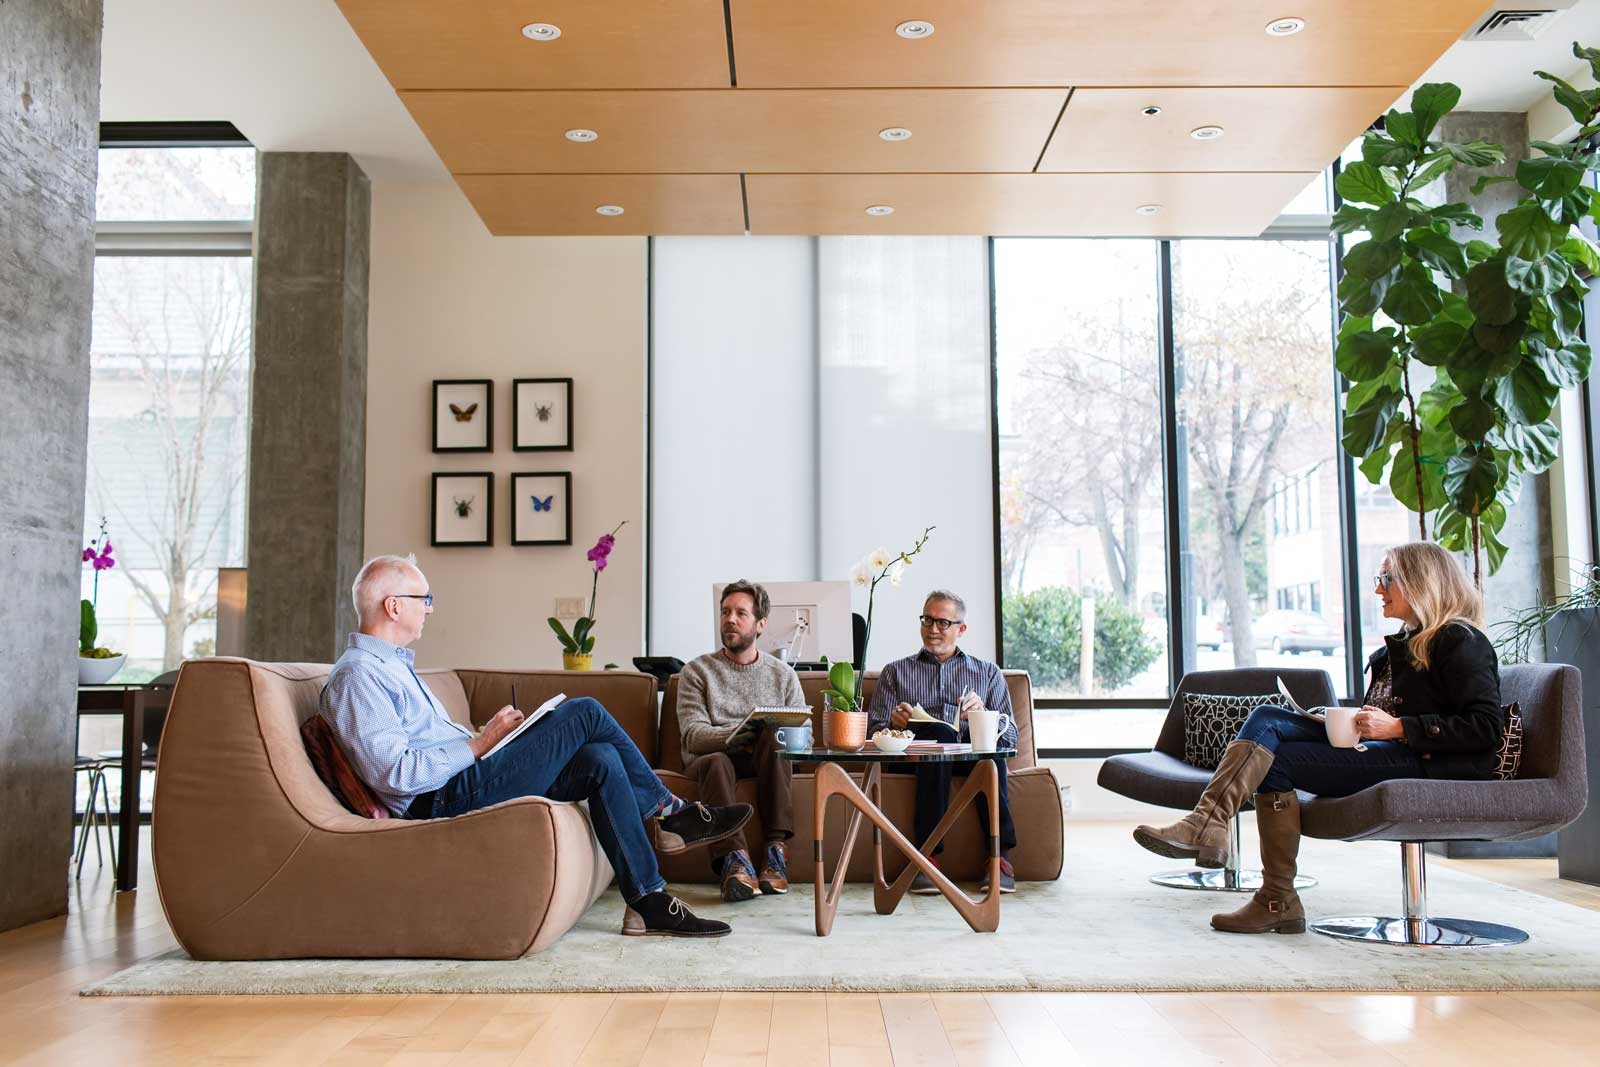 828 design office shot with Jim Chris Tom and Lainie sitting on a sectional and chairs with large windows in background